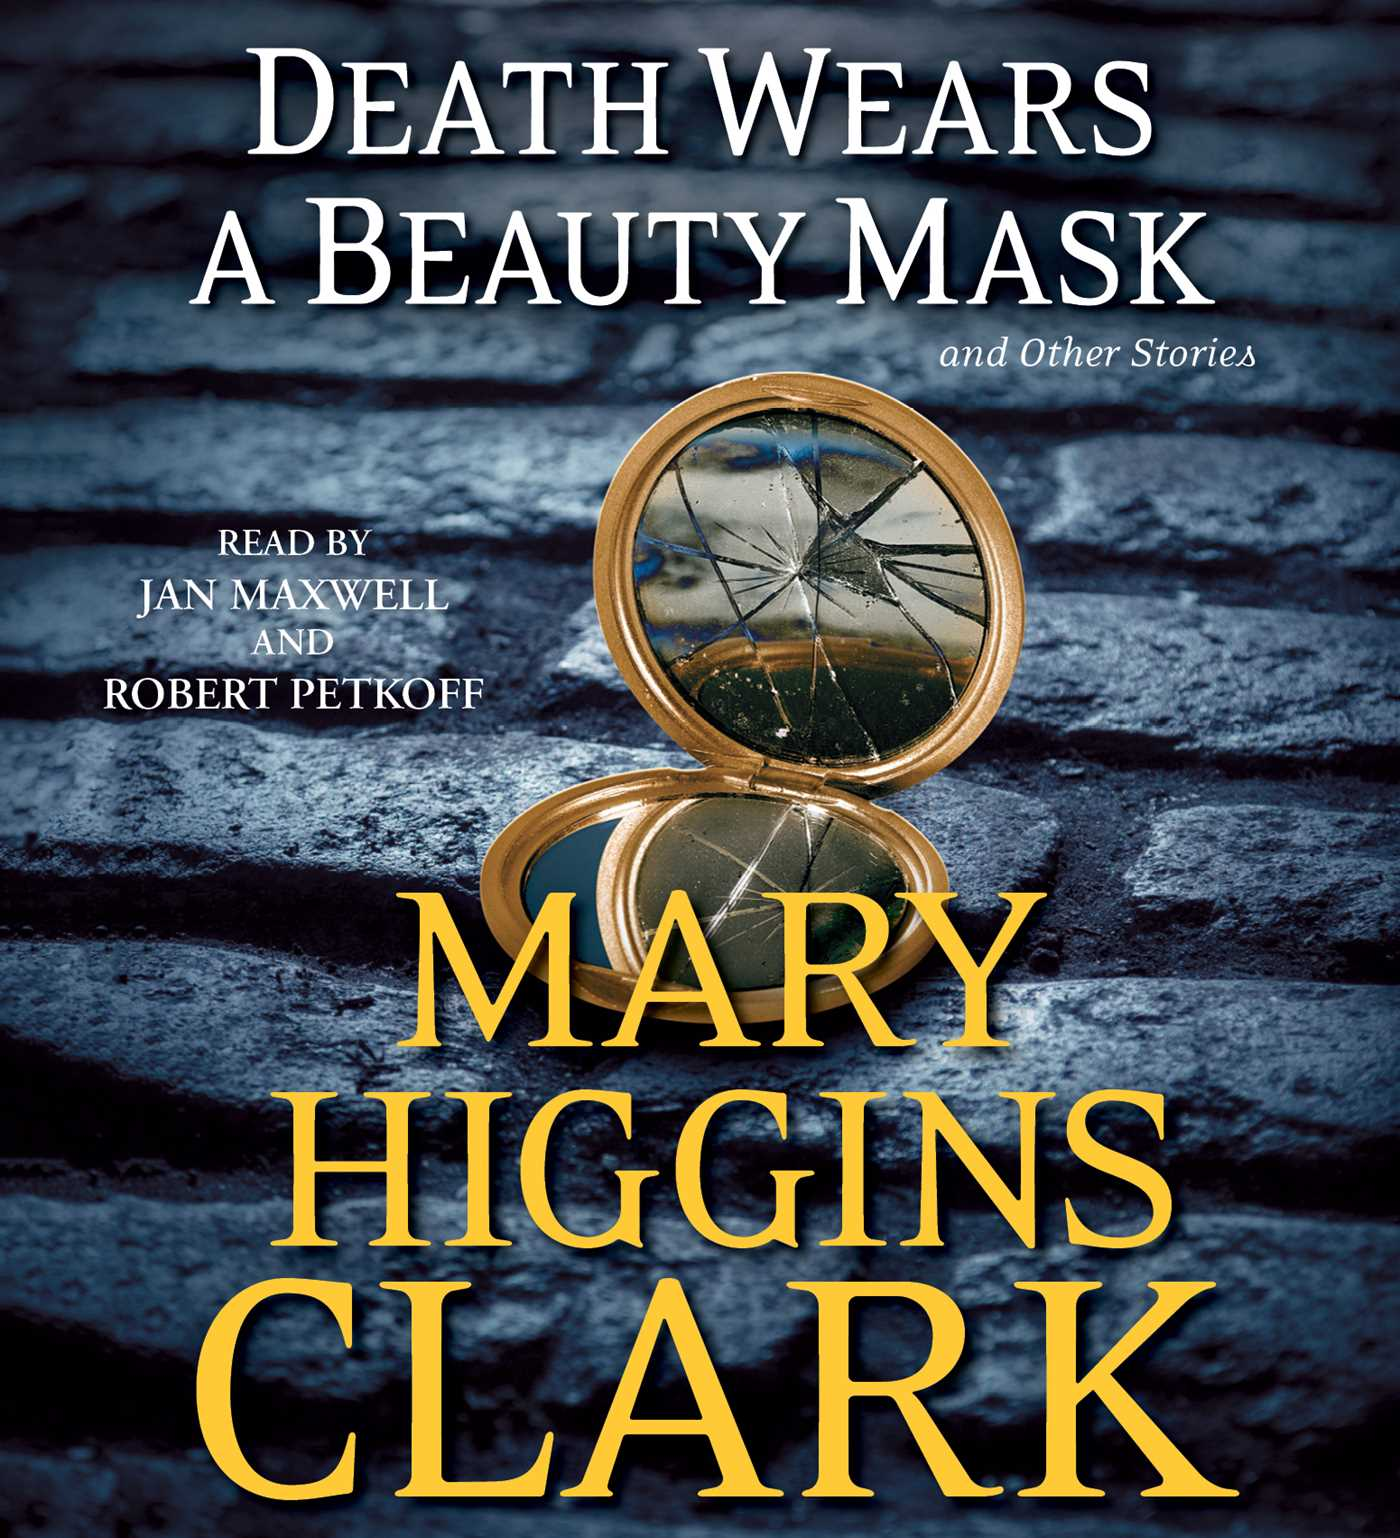 Death wears a beauty mask and other stories 9781442387065 hr